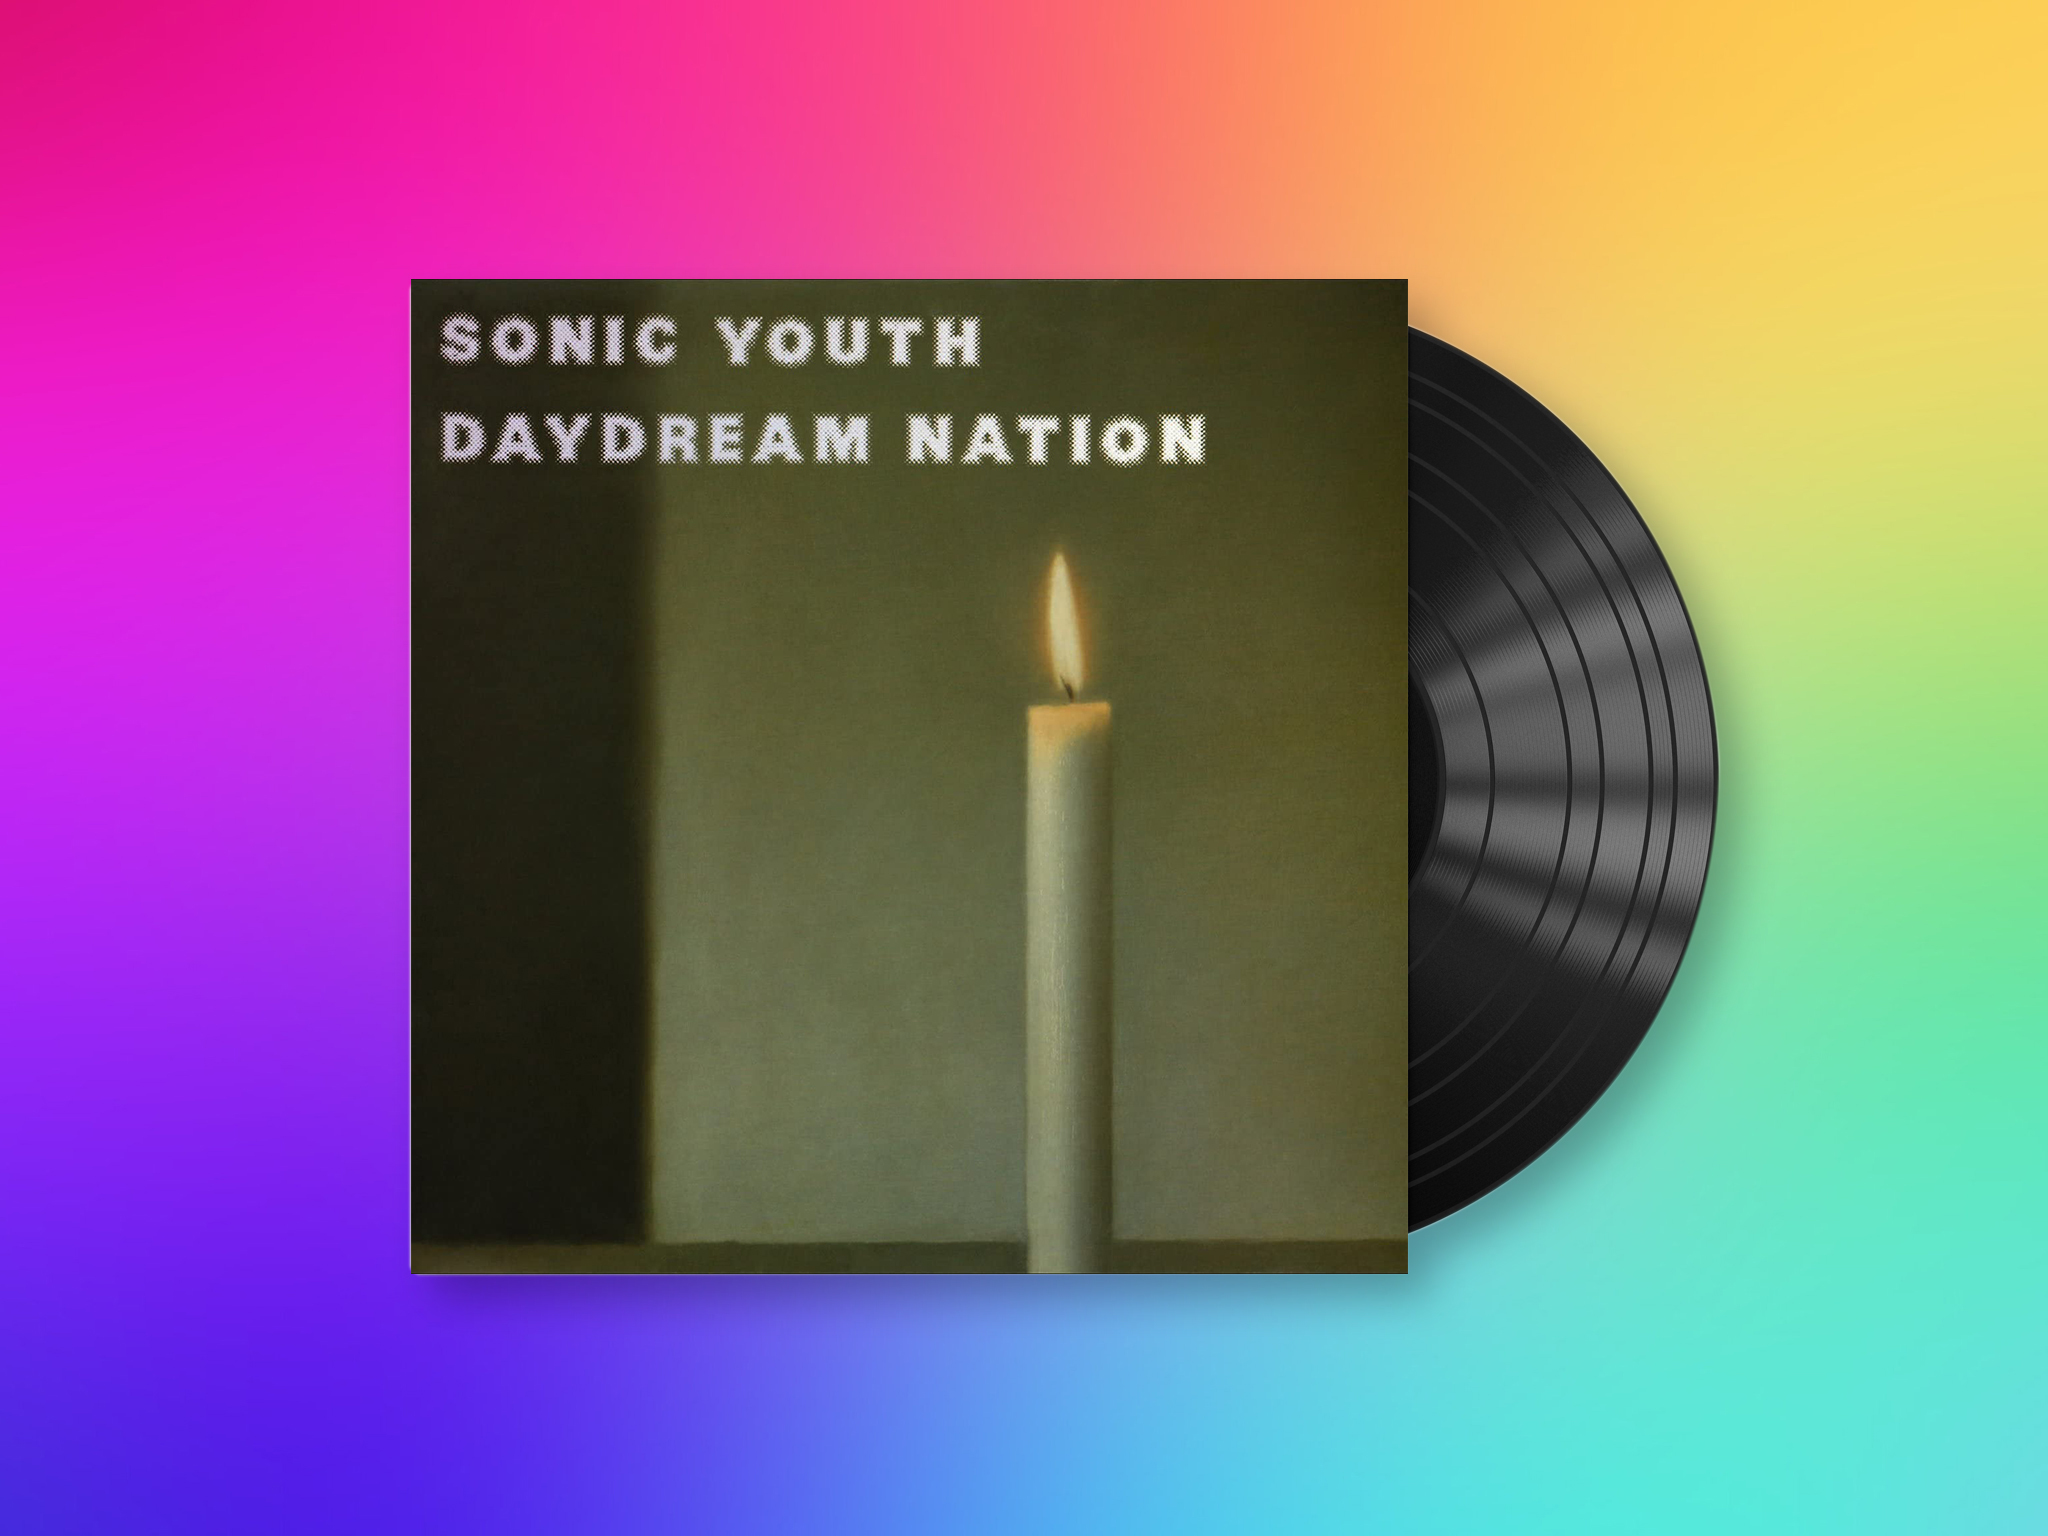 Daydream Nation de Sonic Youth